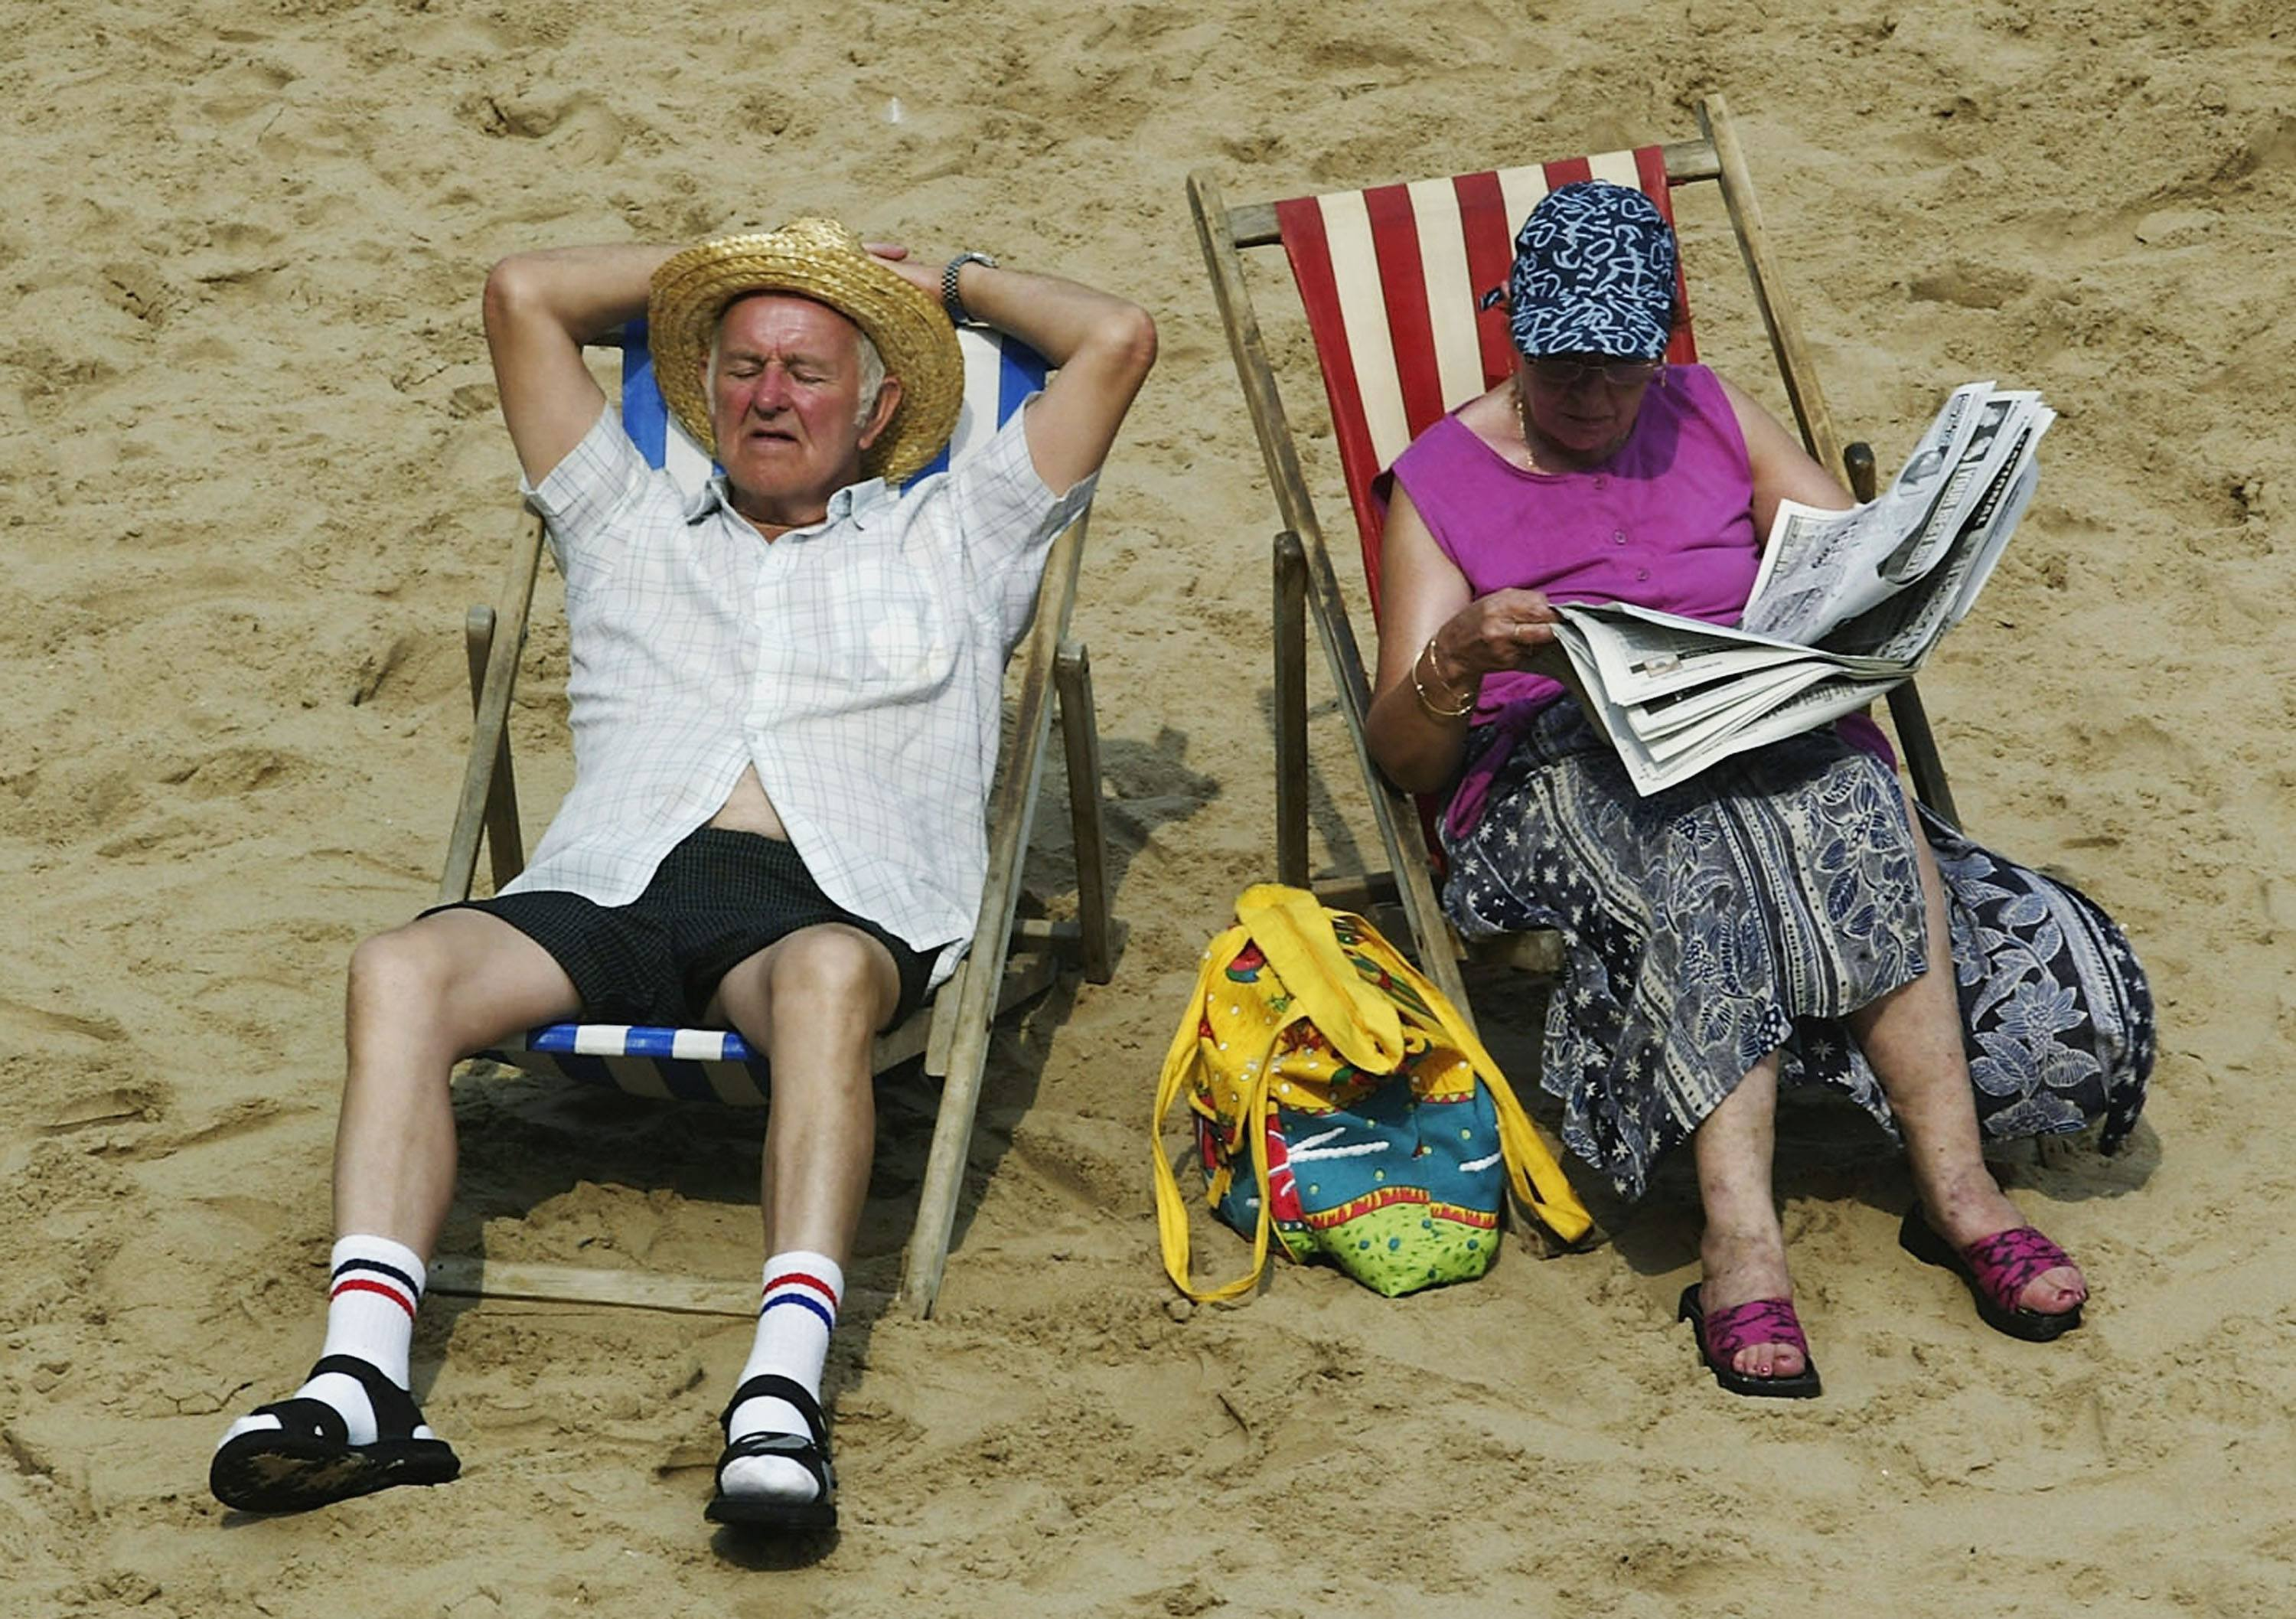 Retirees enjoy retirement by sunbathing on the beach